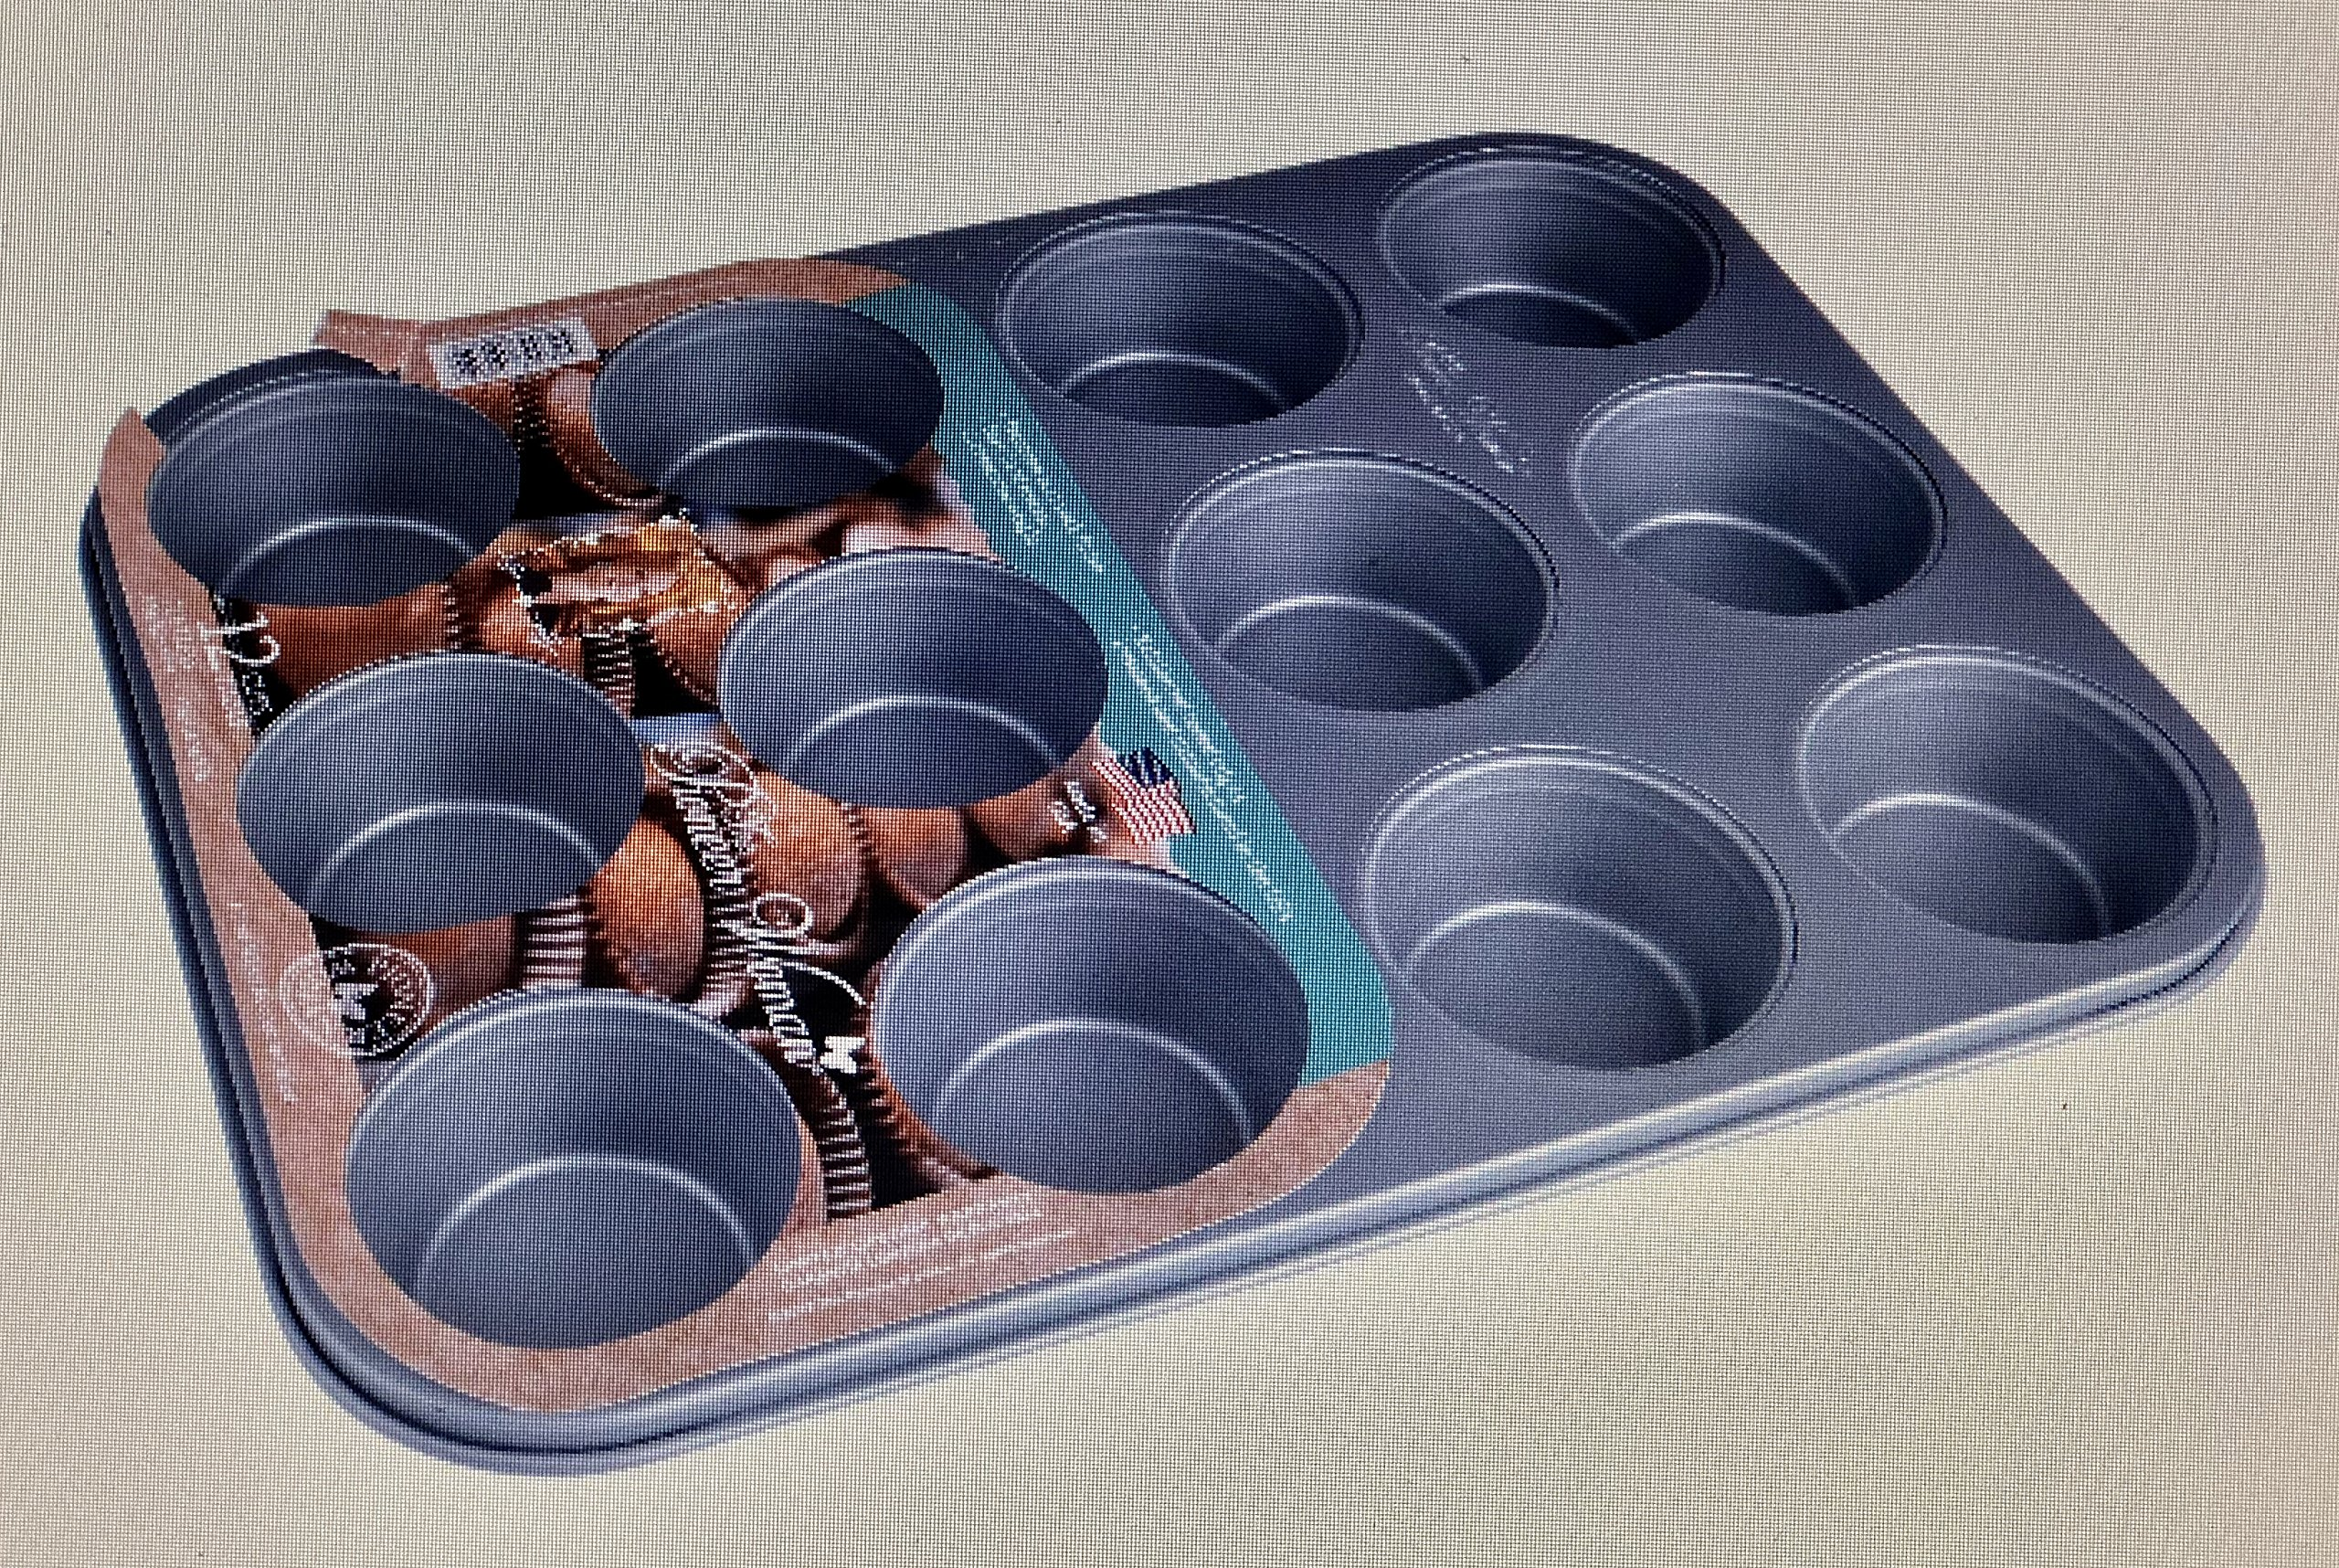 The Pioneer Woman 12 Cup Muffin Pan (Nonstick) by The Pioneer Woman (Image #1)